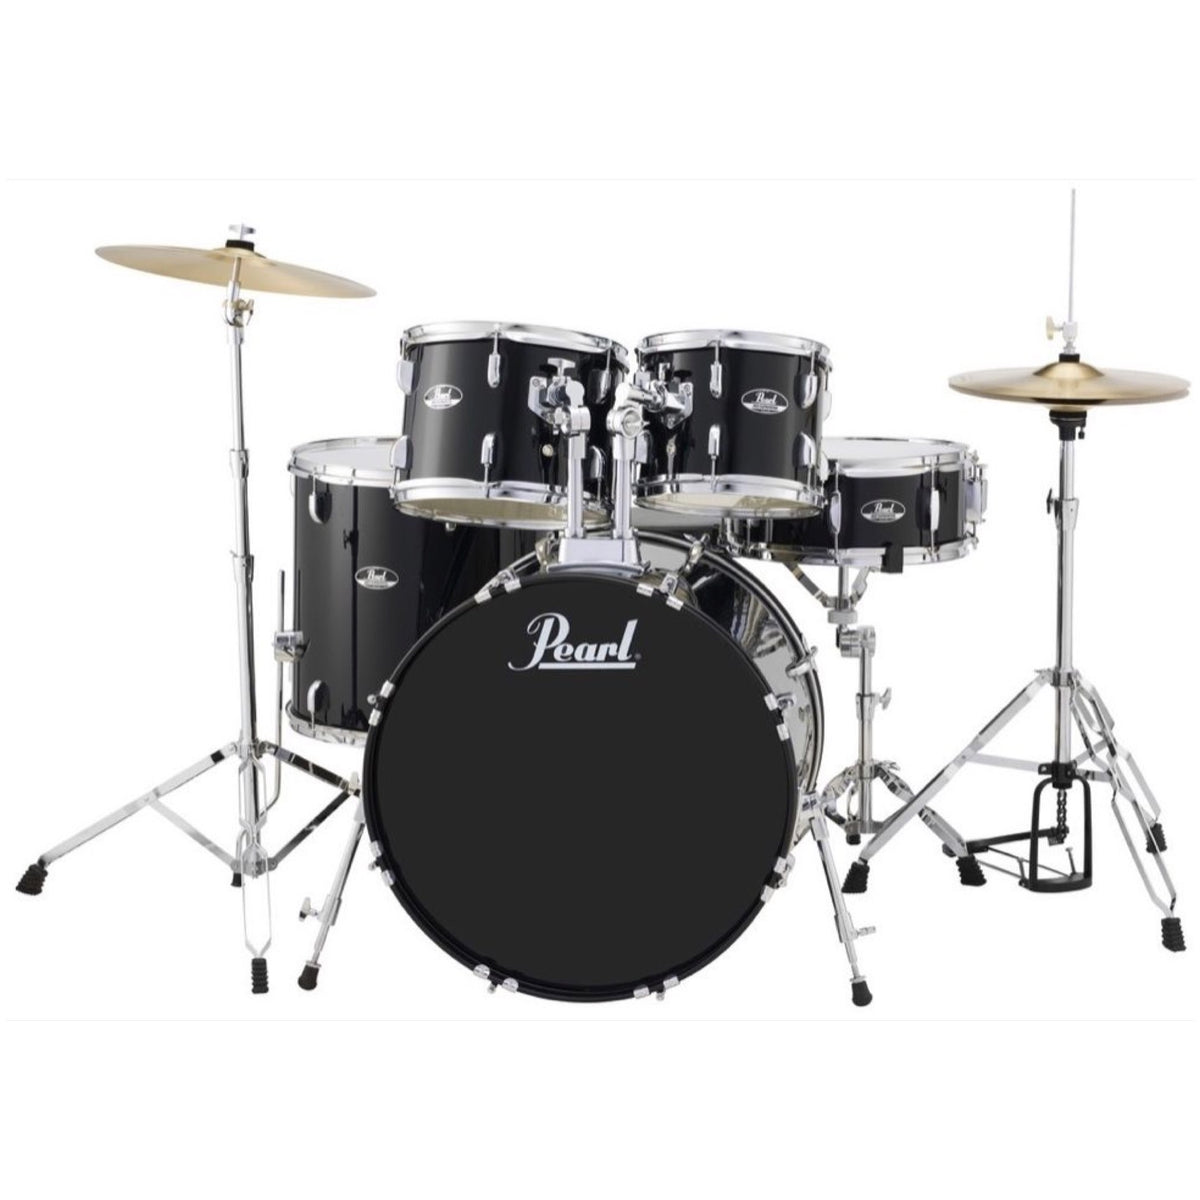 Pearl RS525SC Roadshow Complete Drum Kit, 5-Piece, Black